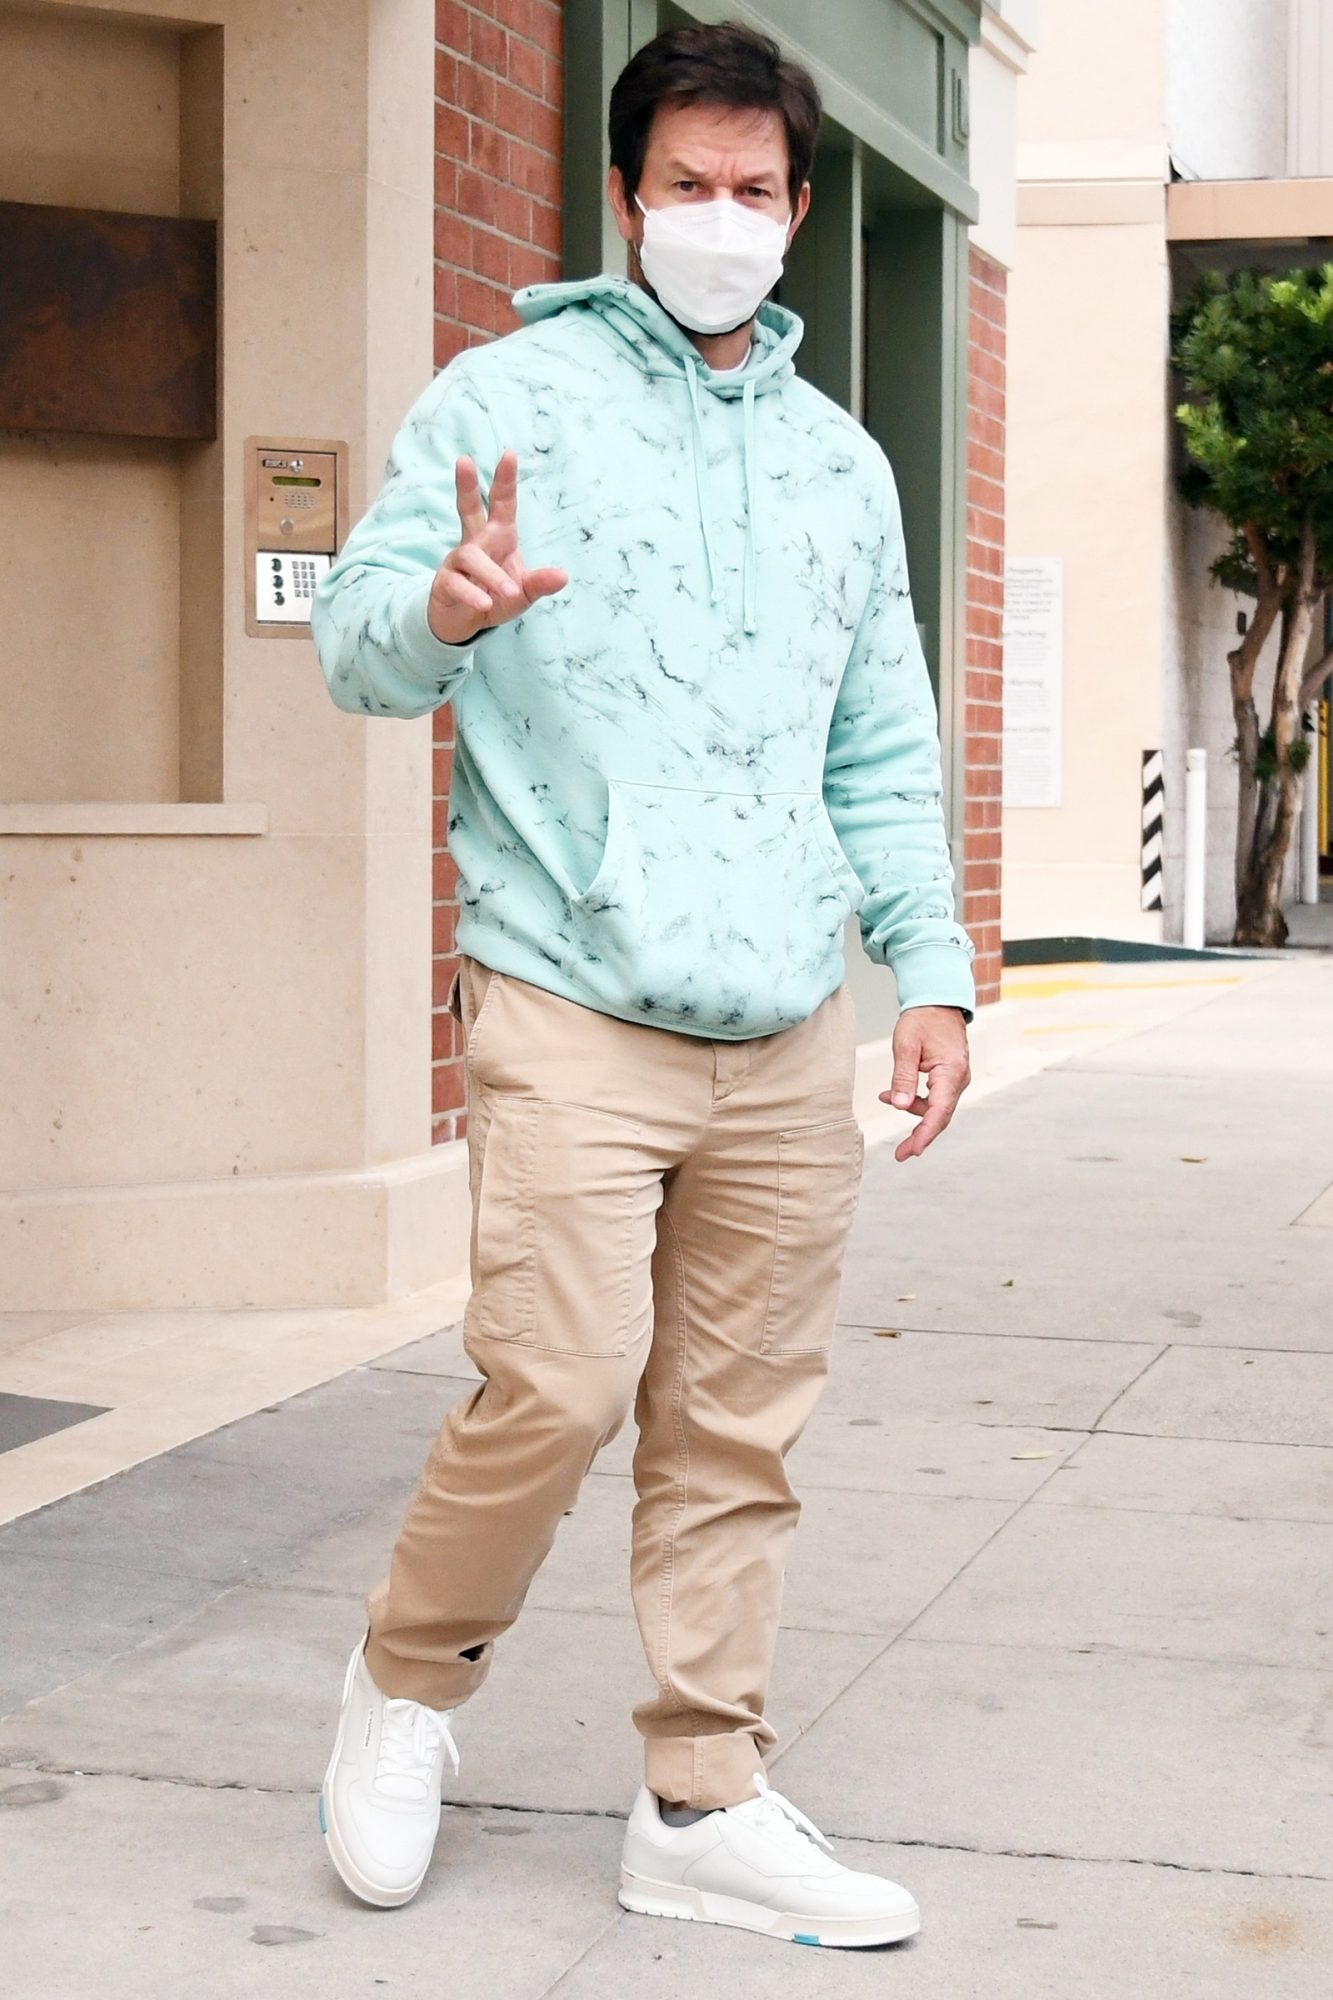 Mark Wahlberg steps out for a quick doctor's visit in Beverly Hills